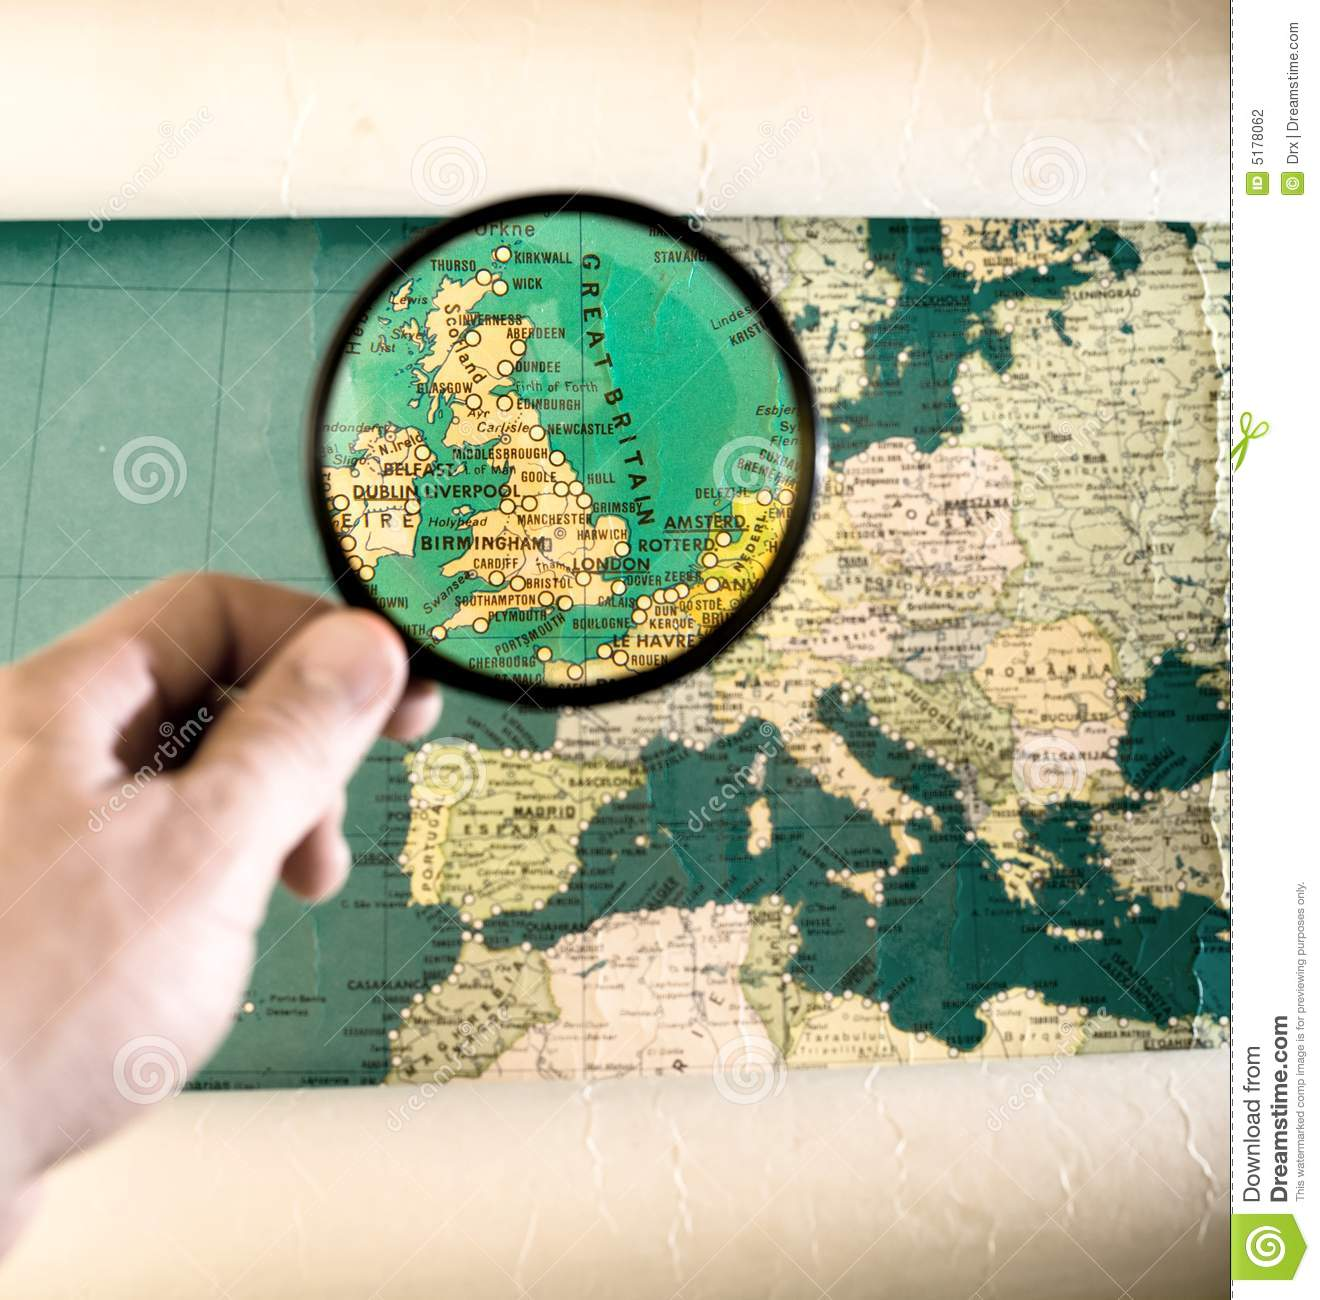 Zoom In Map Of Uk.Magnifying Glass Zoom On United Kingdom Stock Photo Image Of Zoom